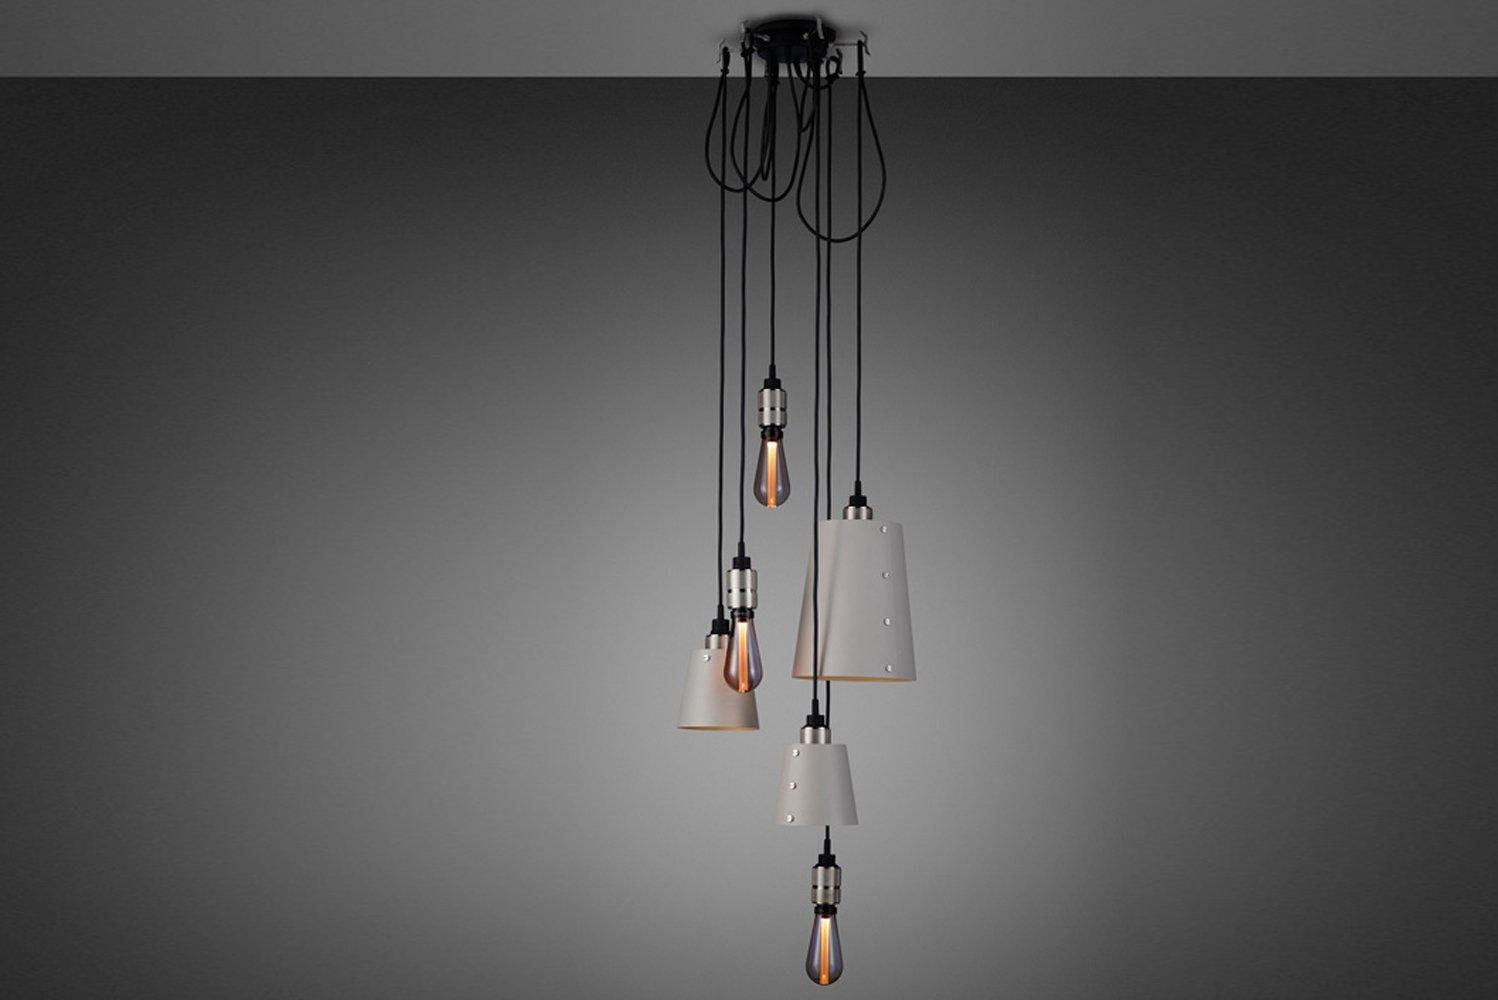 The drop length can be adjusted manually and hooked onto a solid metal hook, allowing the lights to be customized into any unique sculptural shape.